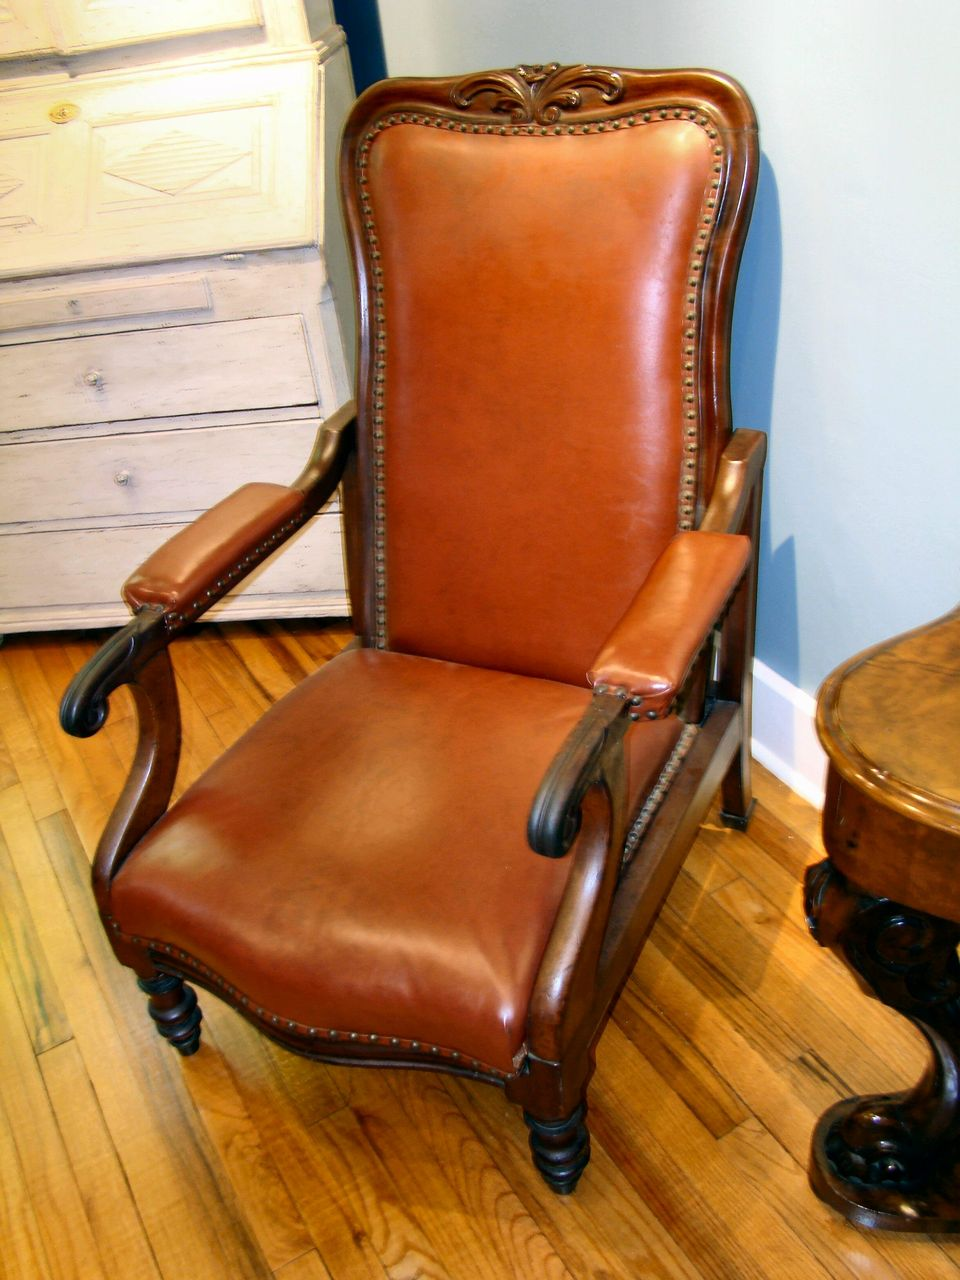 victorian office chair. Fine Leather Victorian Office Chair - Adjustable : Wayne Mattox Antiques | Ruby Lane